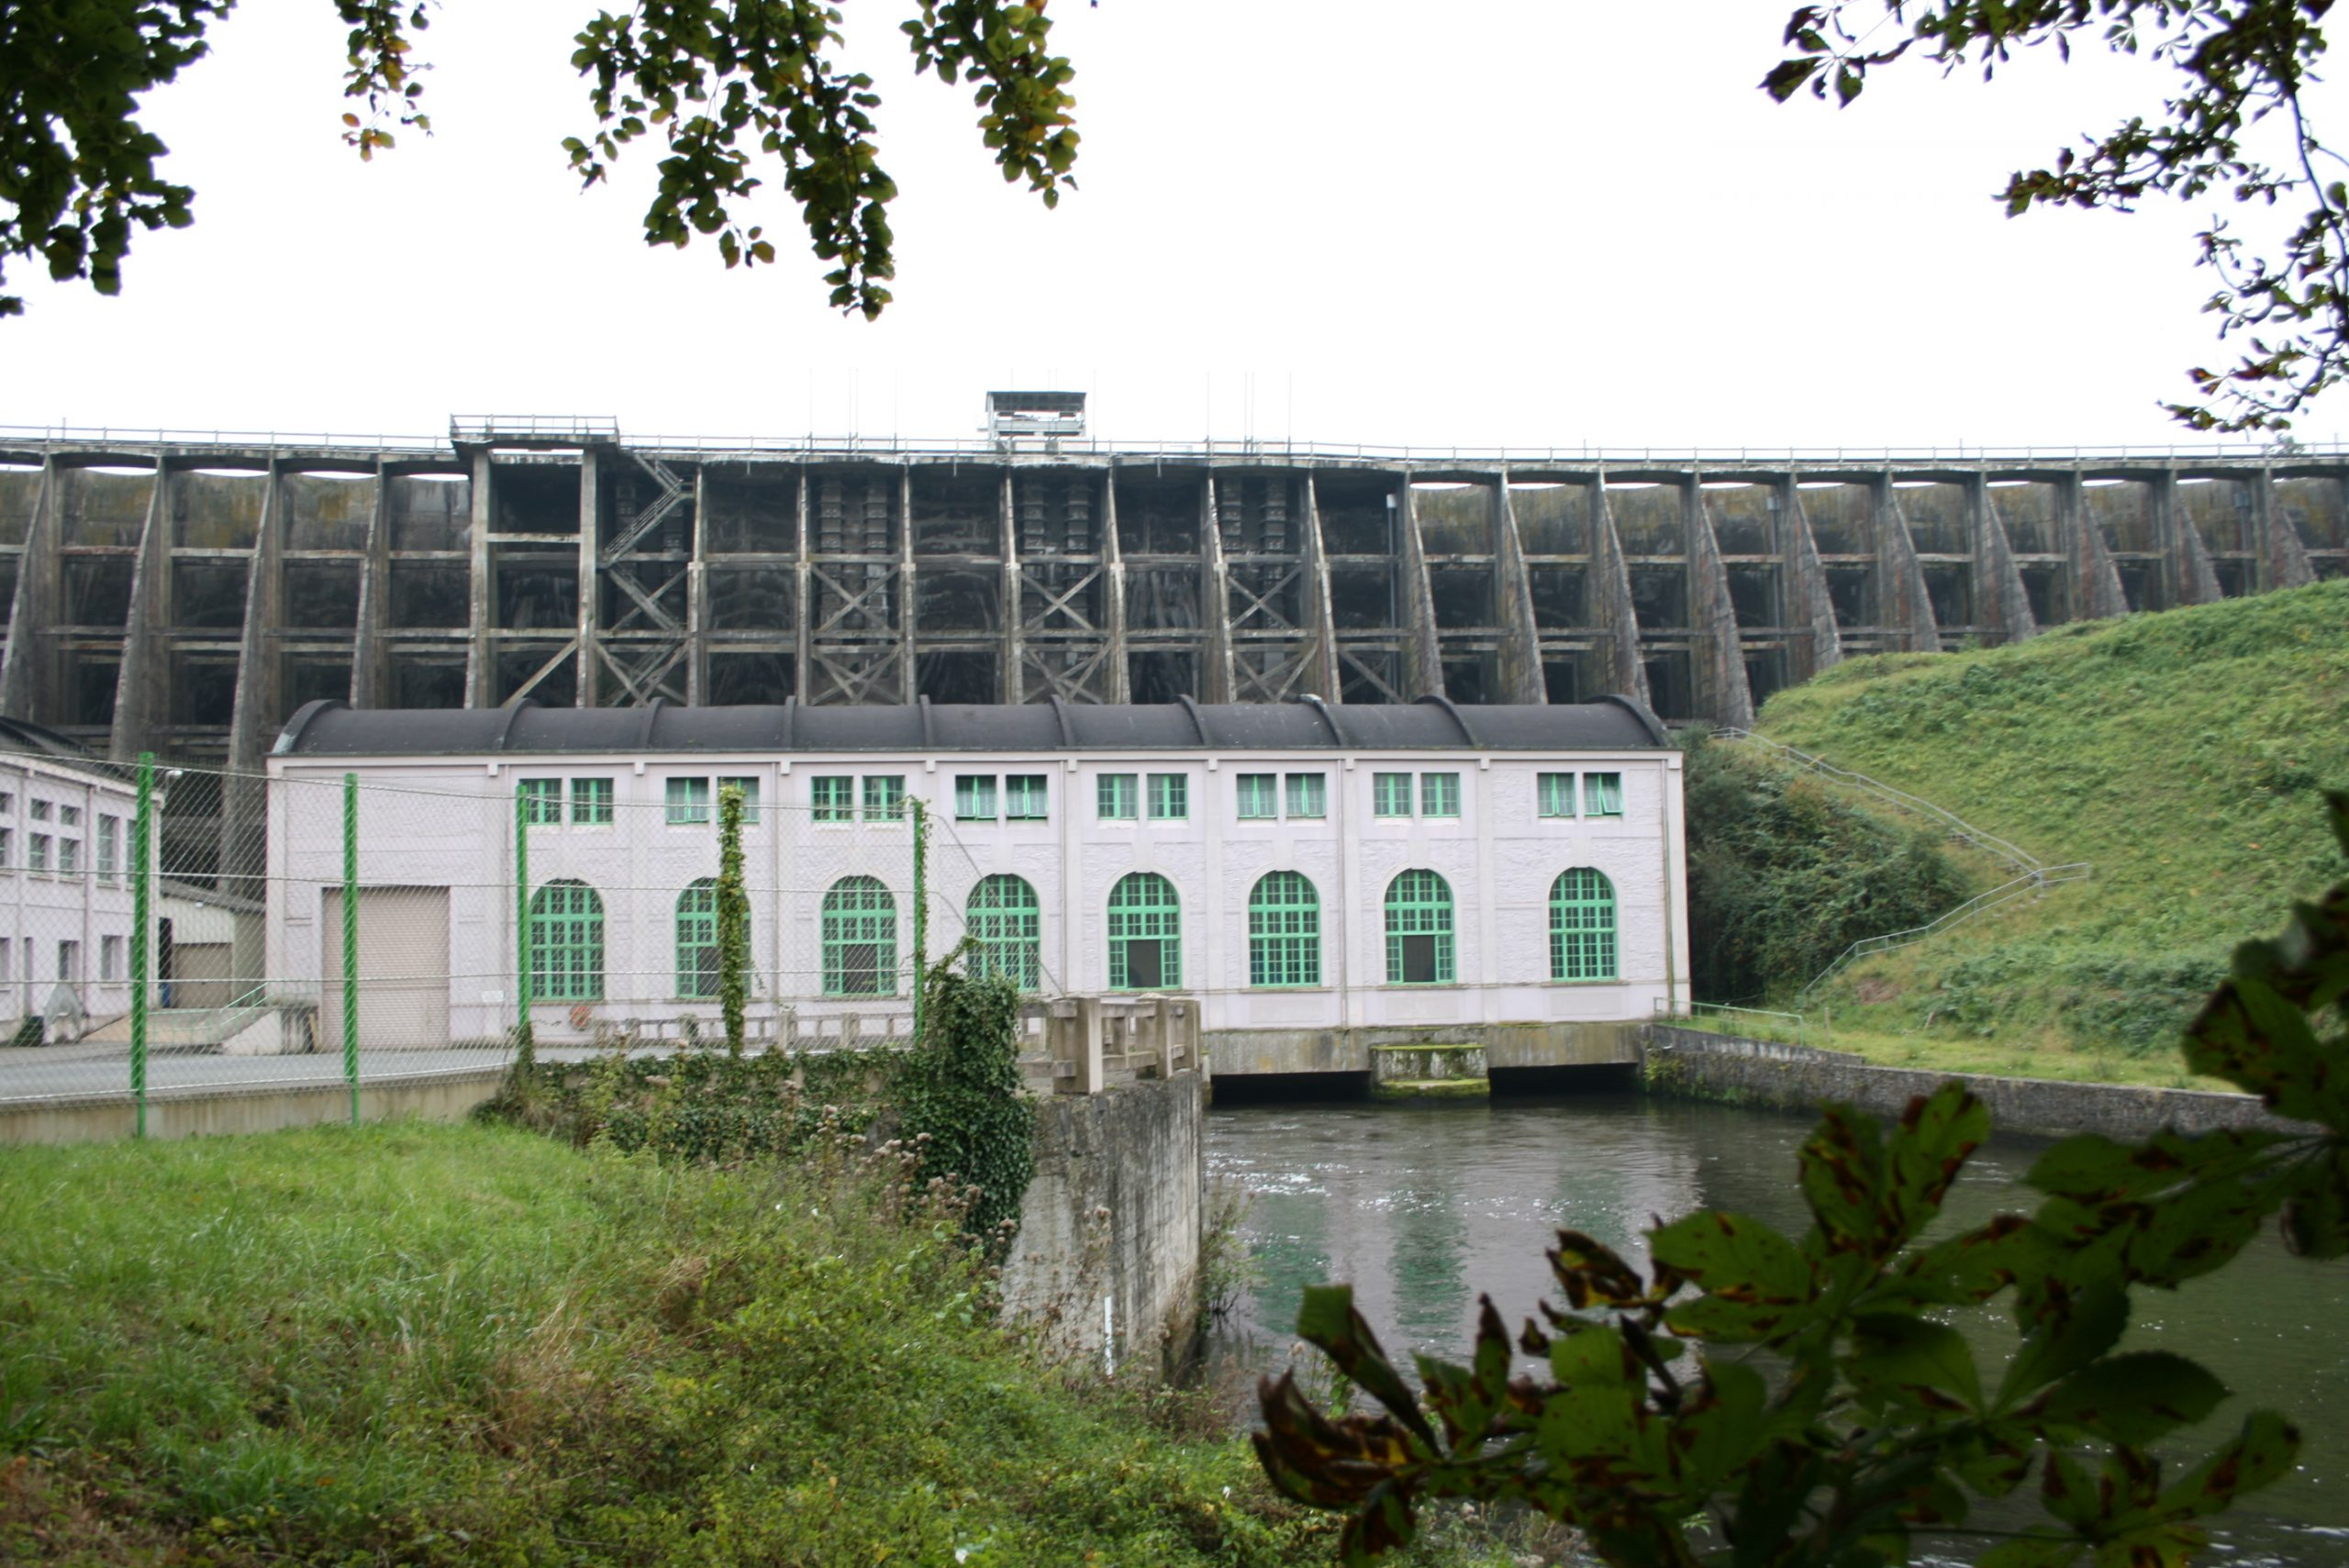 Demolition of the Roche Qui Boit Dam scheduled for 2021